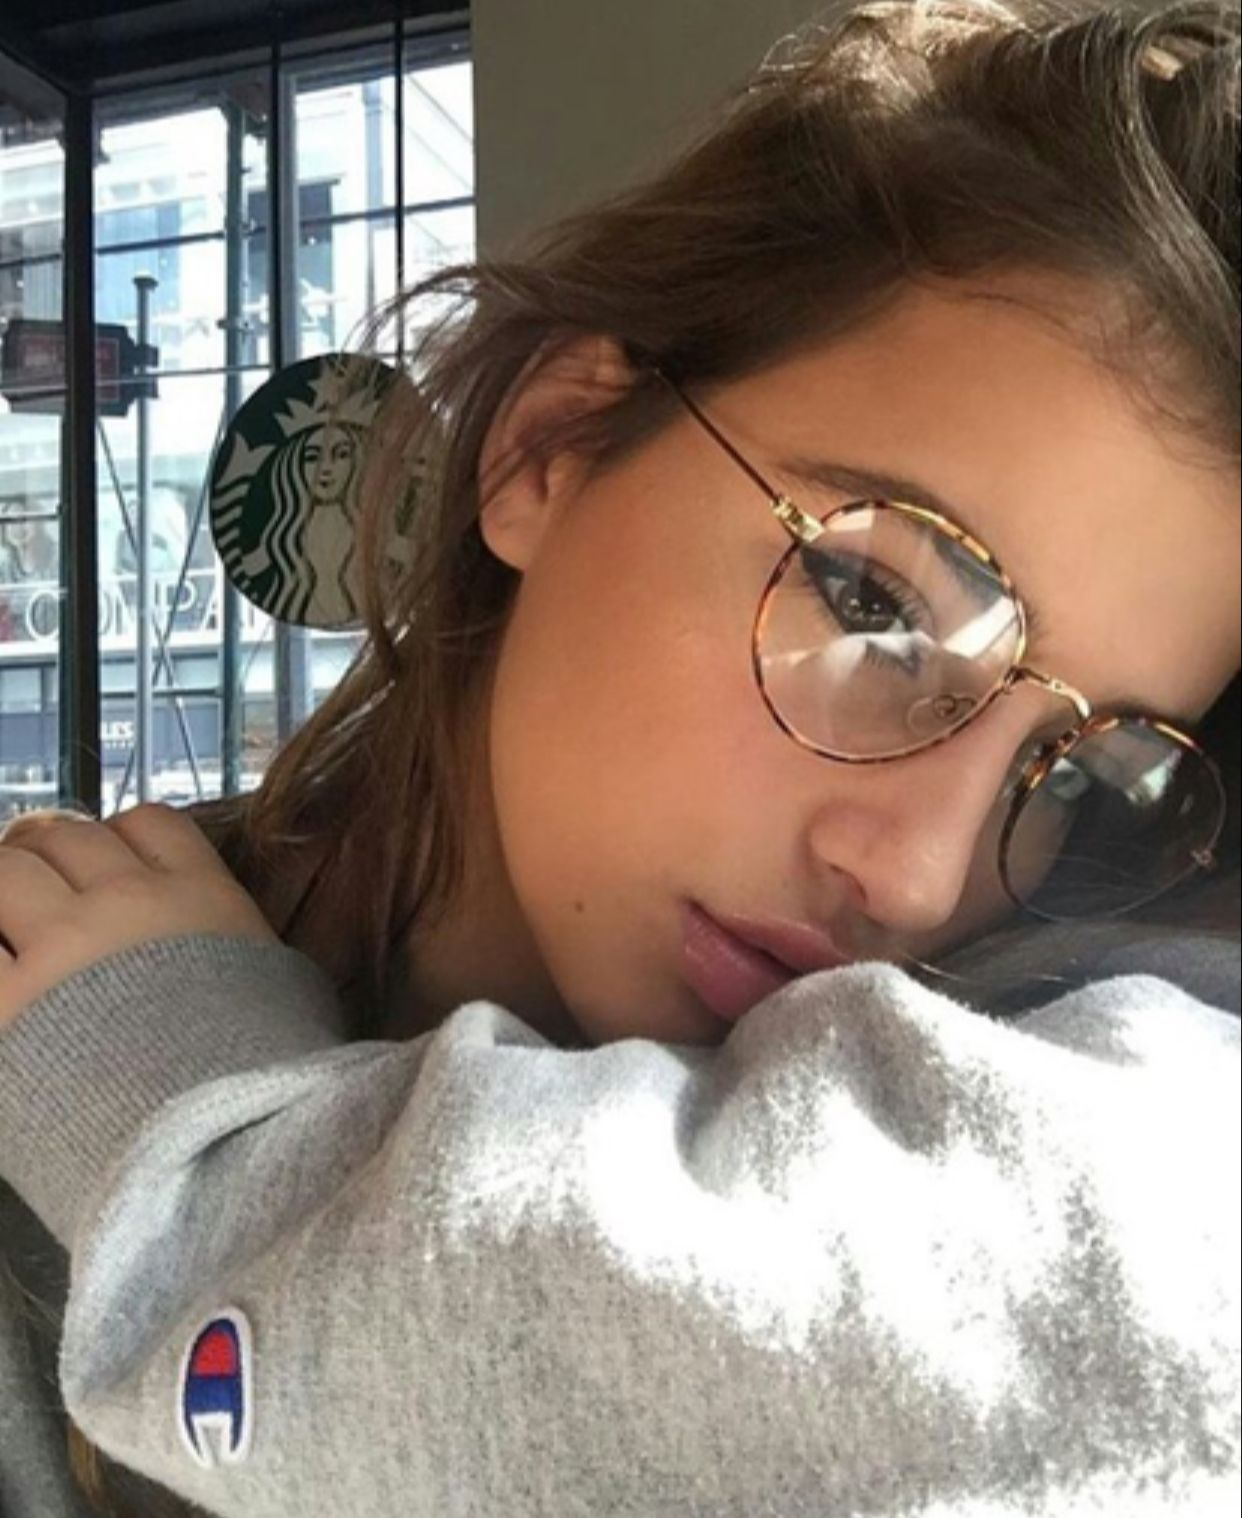 053953f79 Vintage ish glasses with a wife frame | Glasses in 2019 | Fotos ...